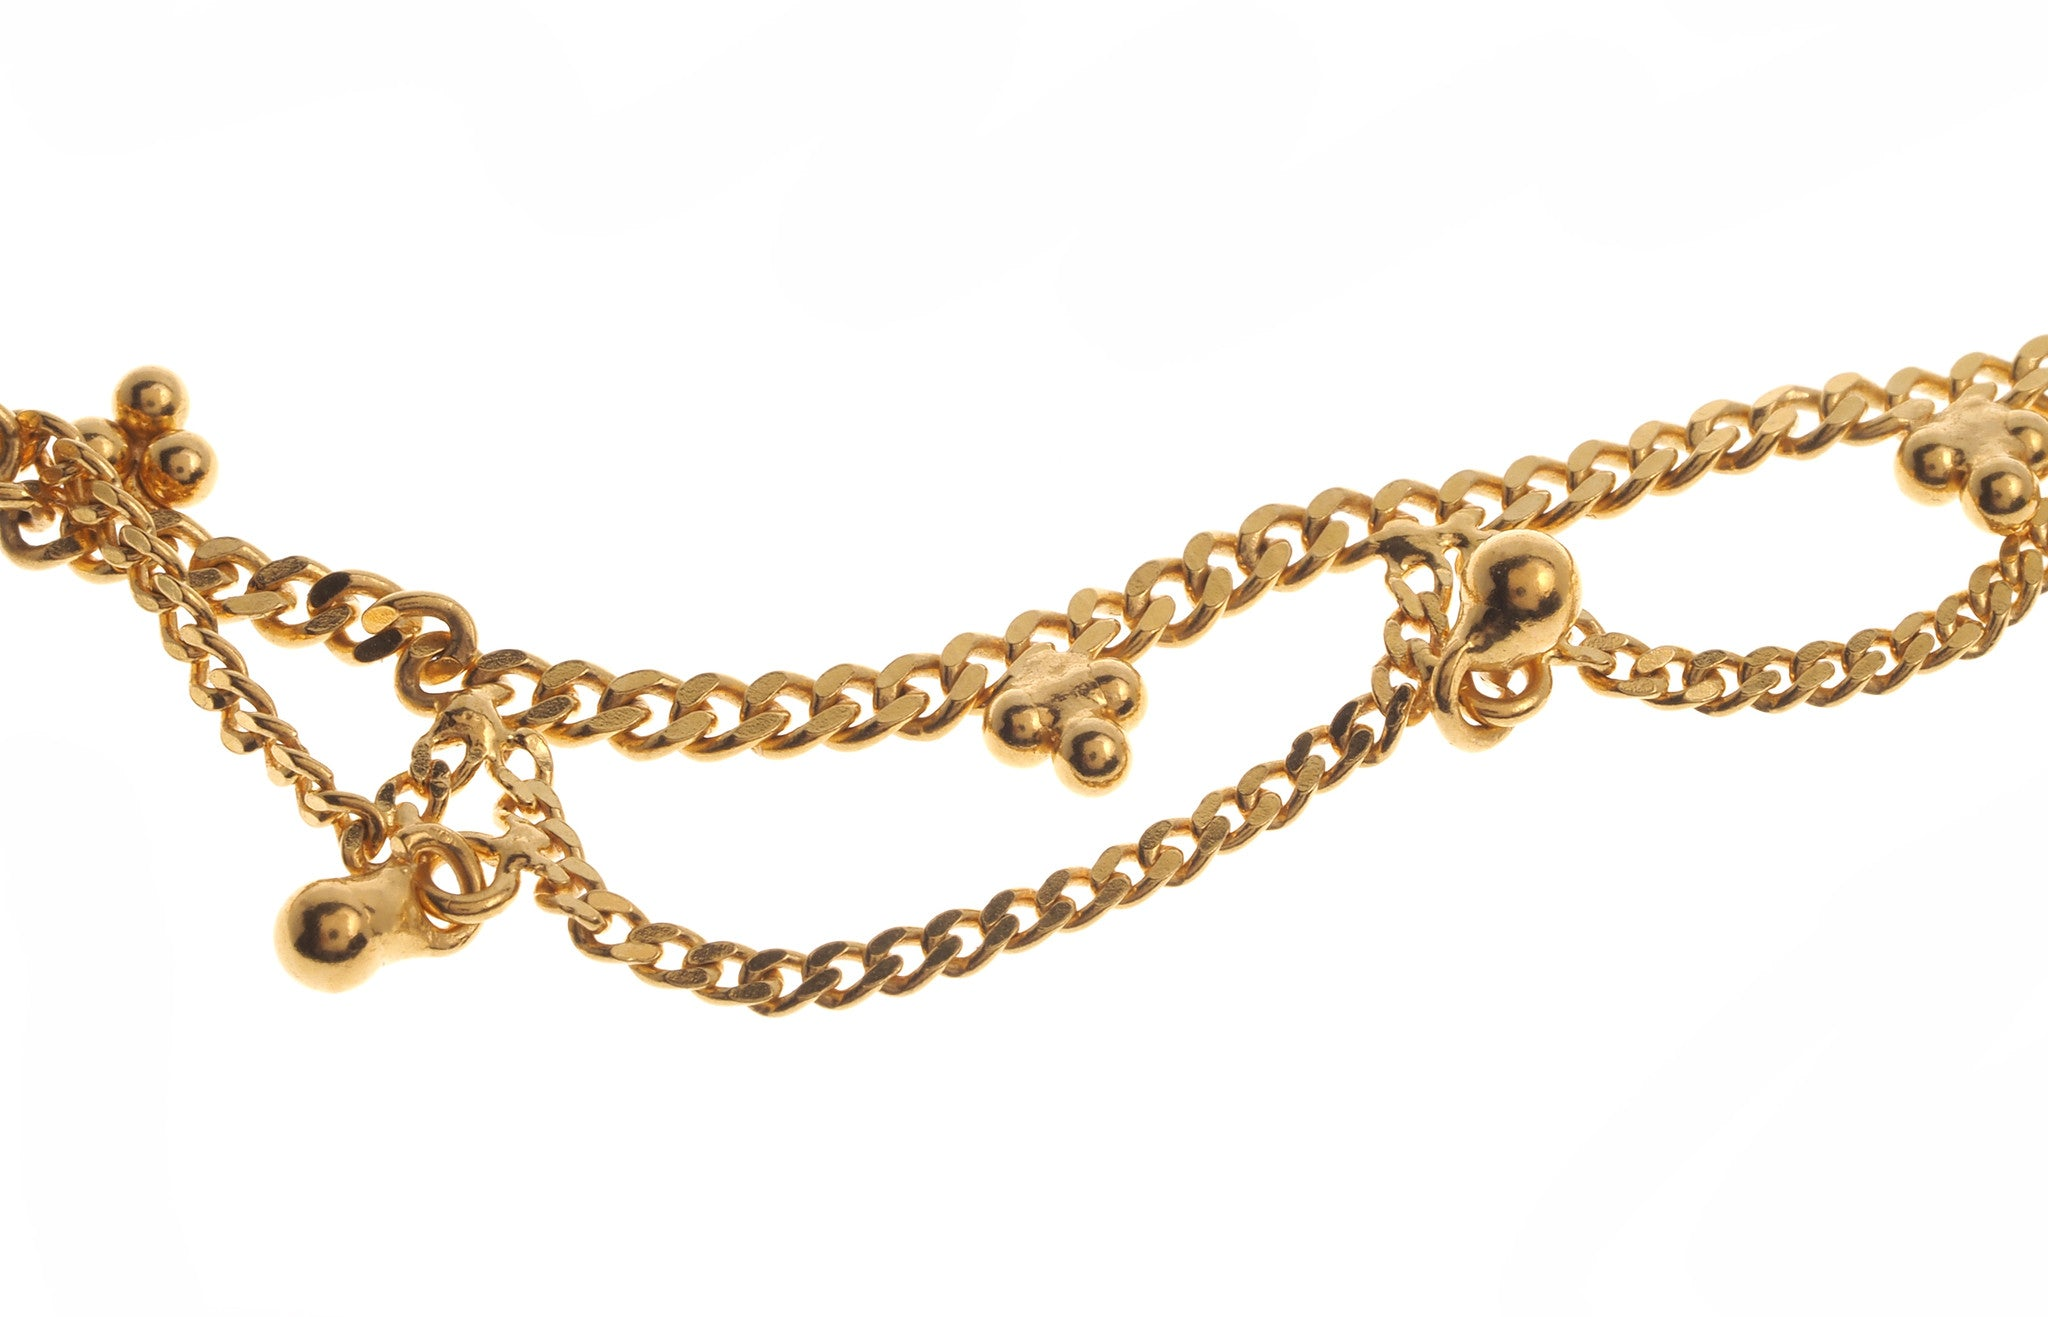 anklets elle gold jewels product cuban chain link bracelet archives category karat by ankle anklet